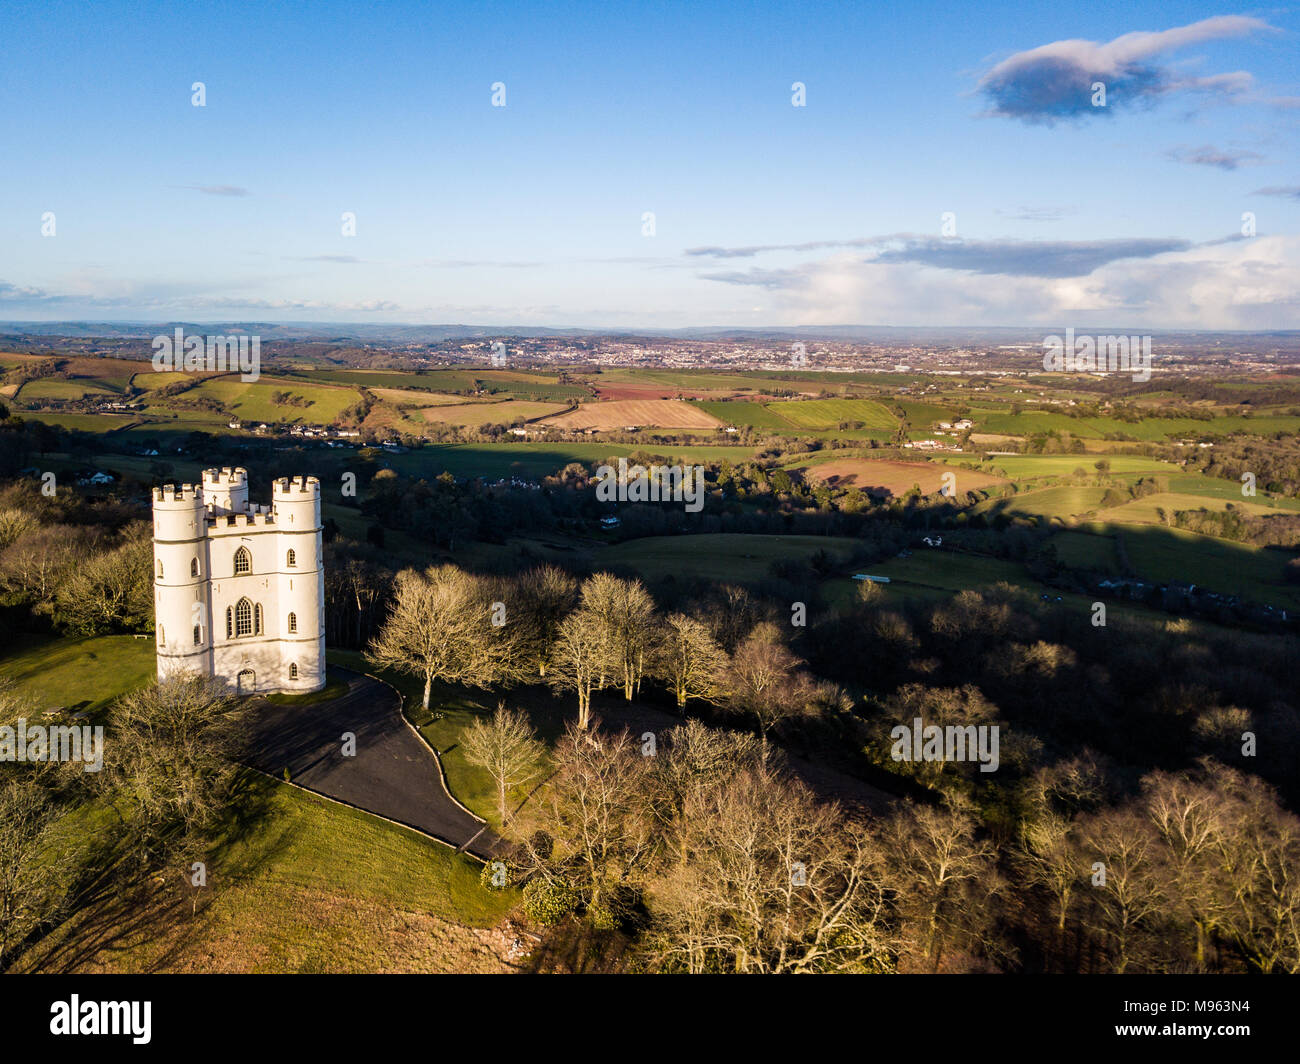 An aerial view of Belvedere castle at Haldon forest in Devon, United Kingdom Stock Photo